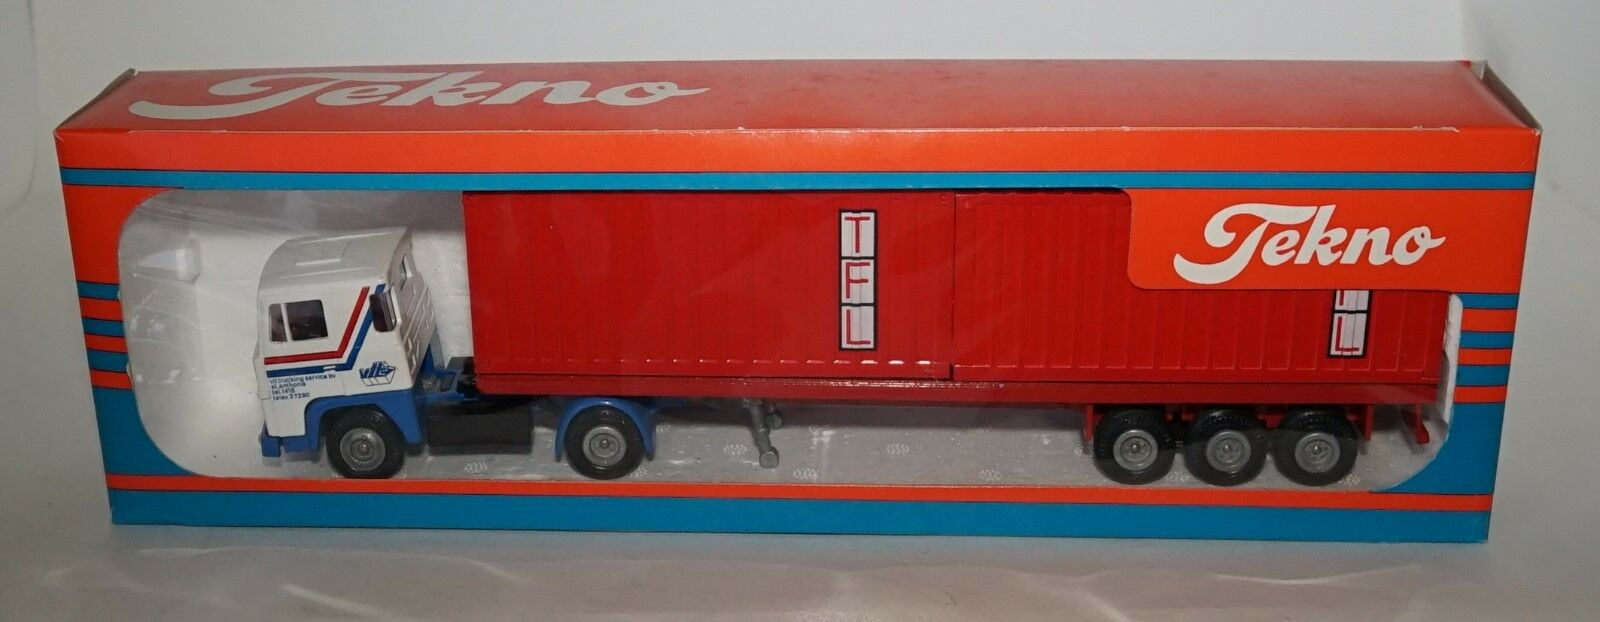 TEKNO Scania VIT With two TFL Containers in 1 50 SCALE.